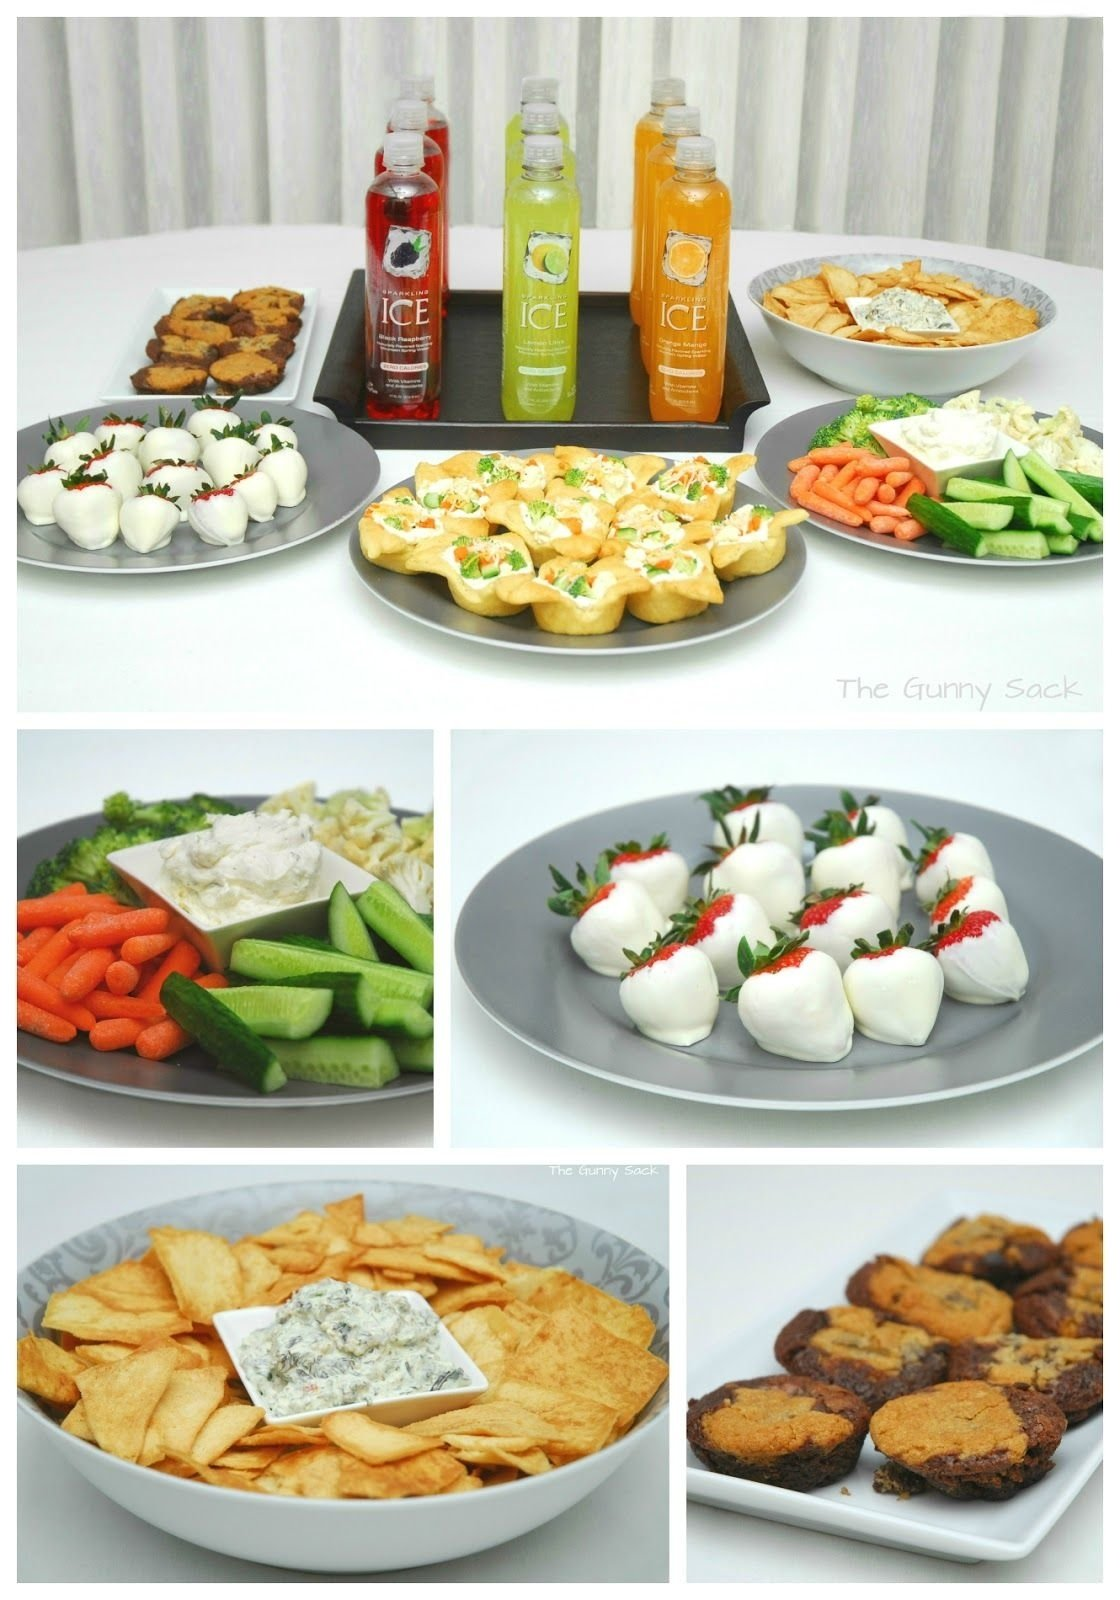 10 Stylish Party Snack Ideas For Adults girlsspapartyideasfood girlfriends pampering spa party